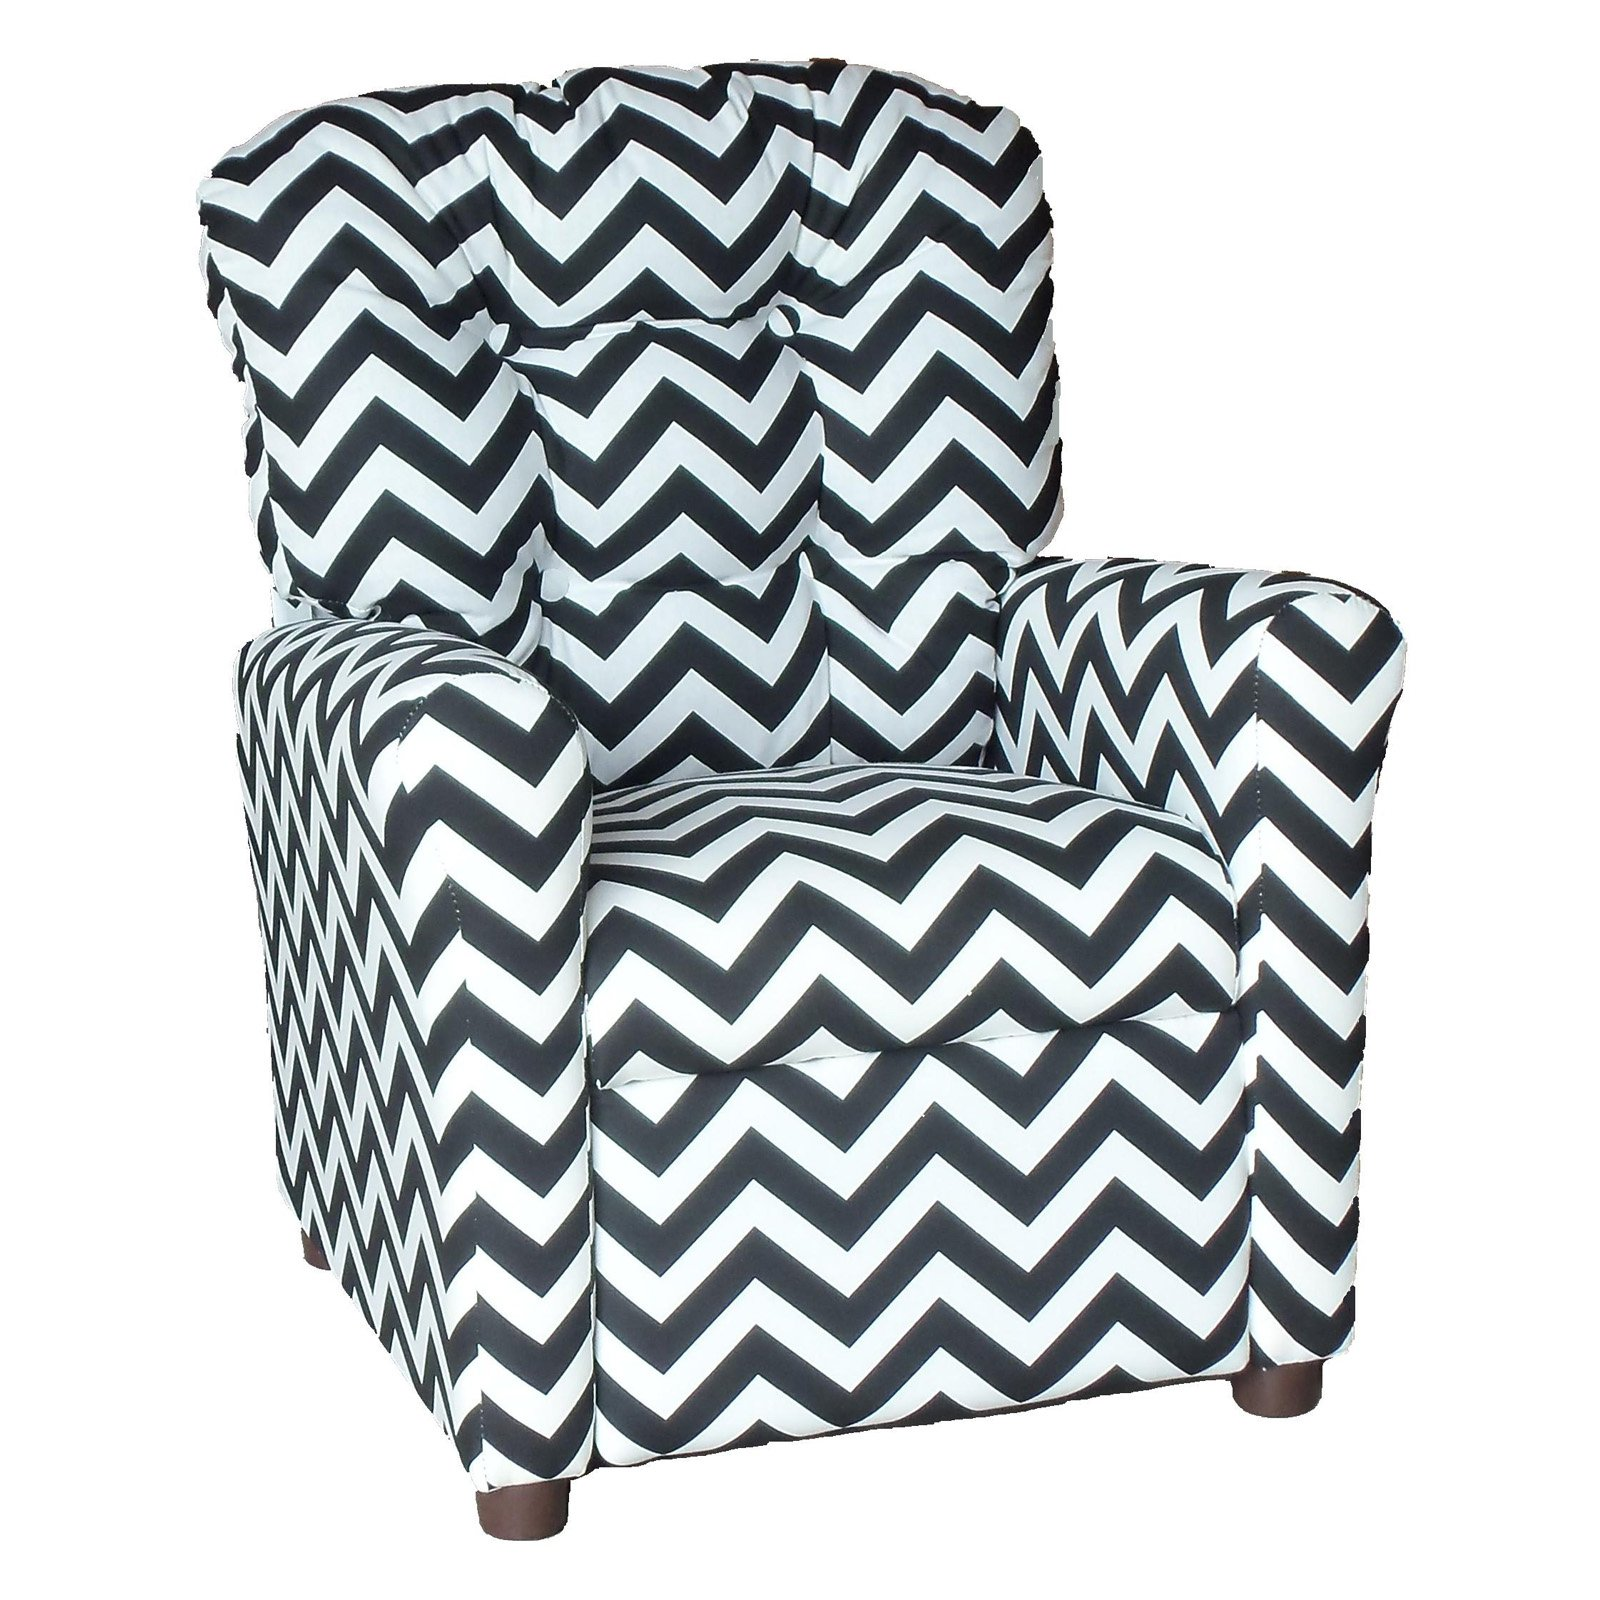 Brazil Furniture 4-Button Back Childrens Recliner - Zig Zag Pattern